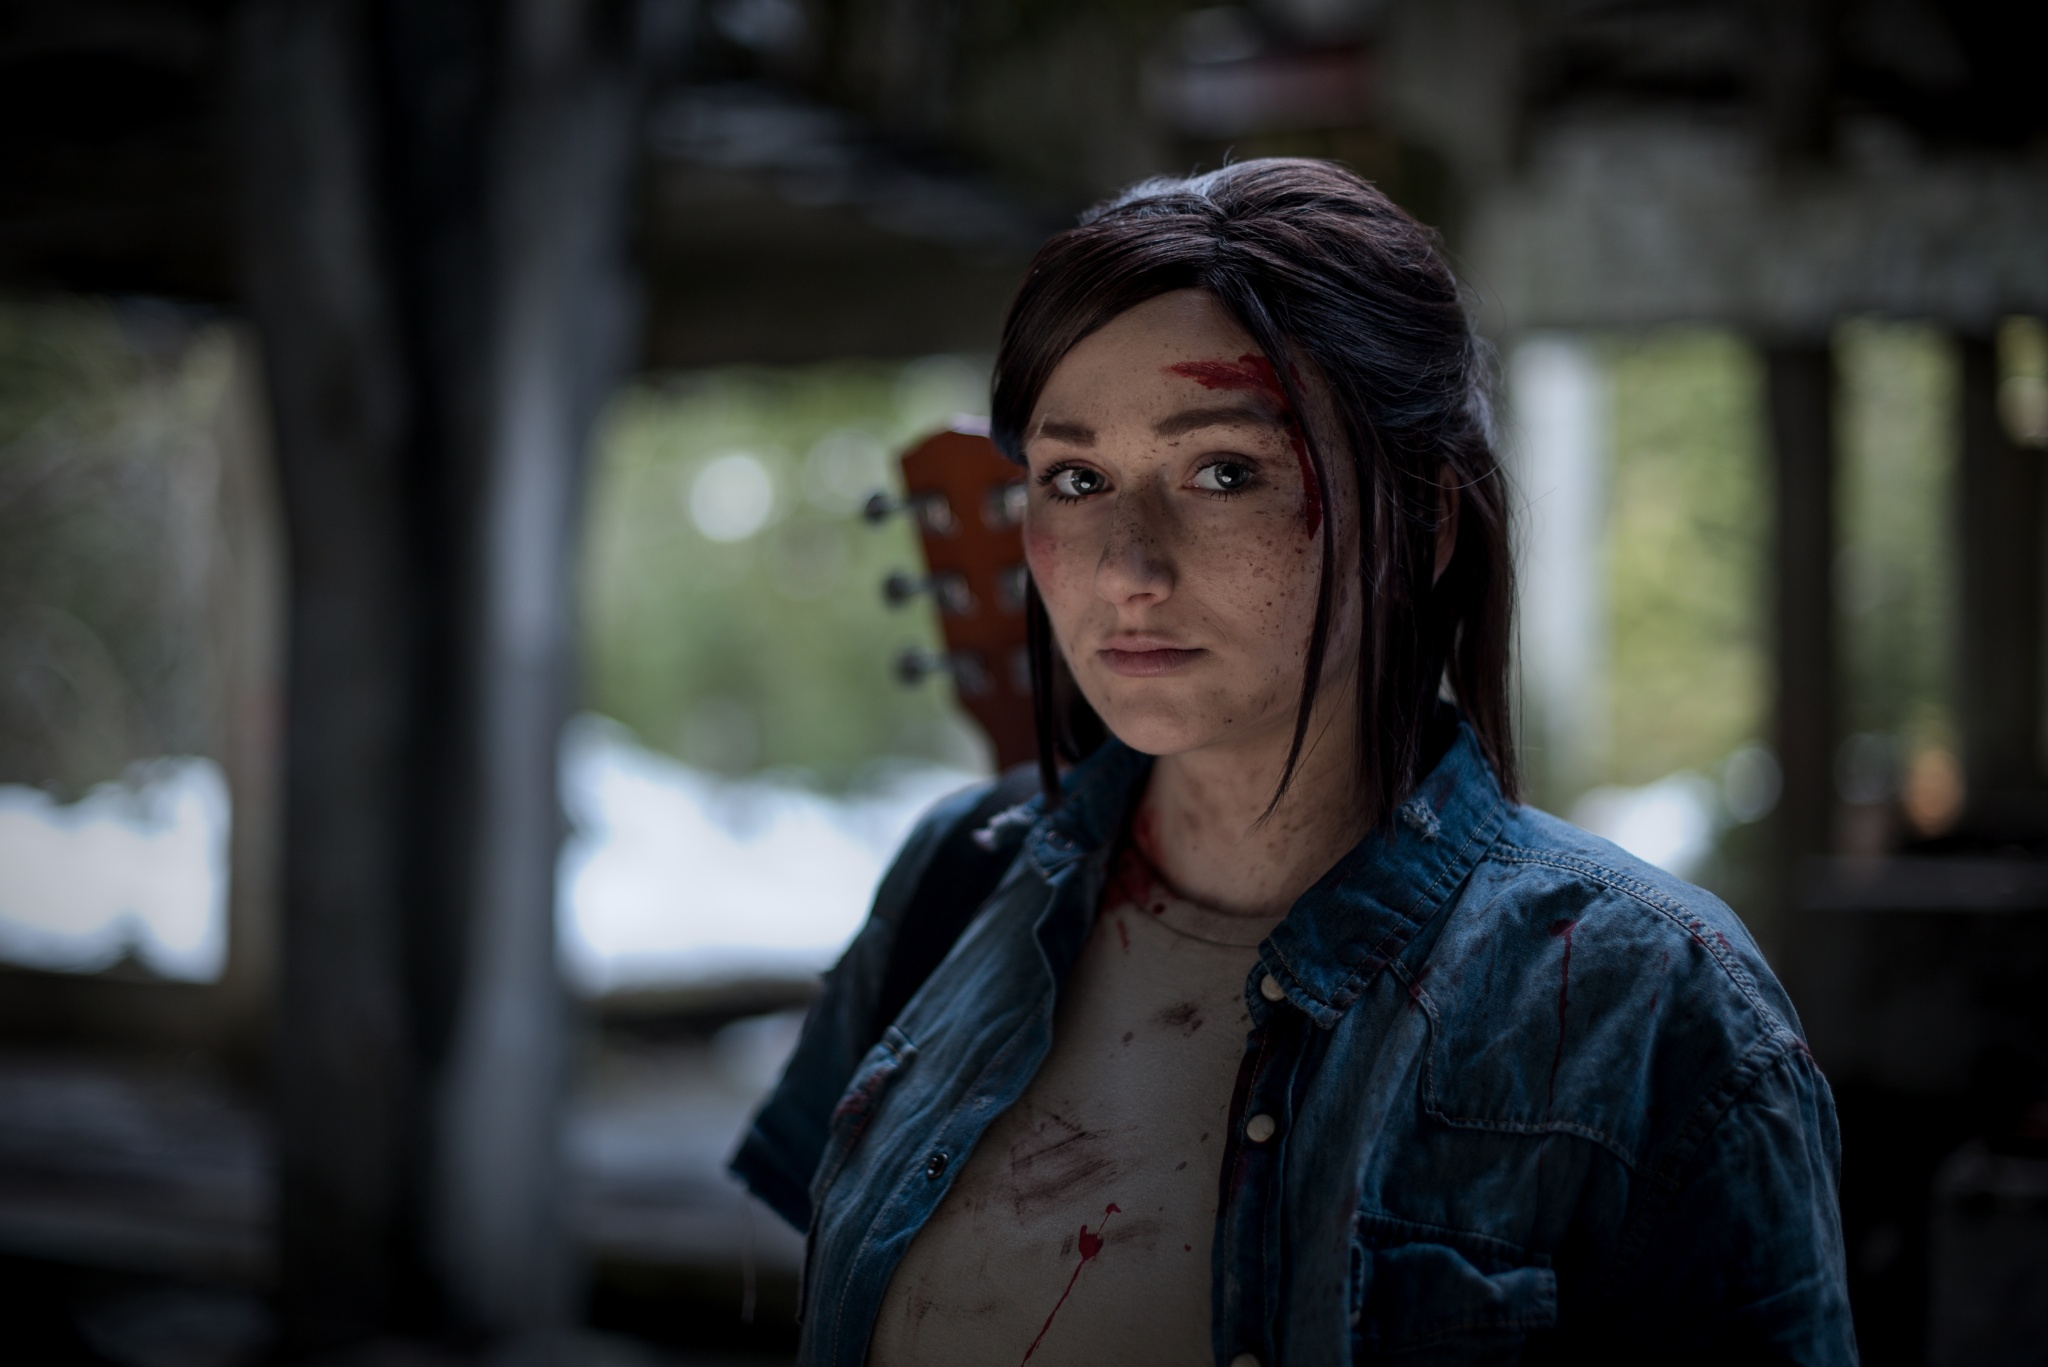 How to Photograph a Cosplay - Ellie cosplay